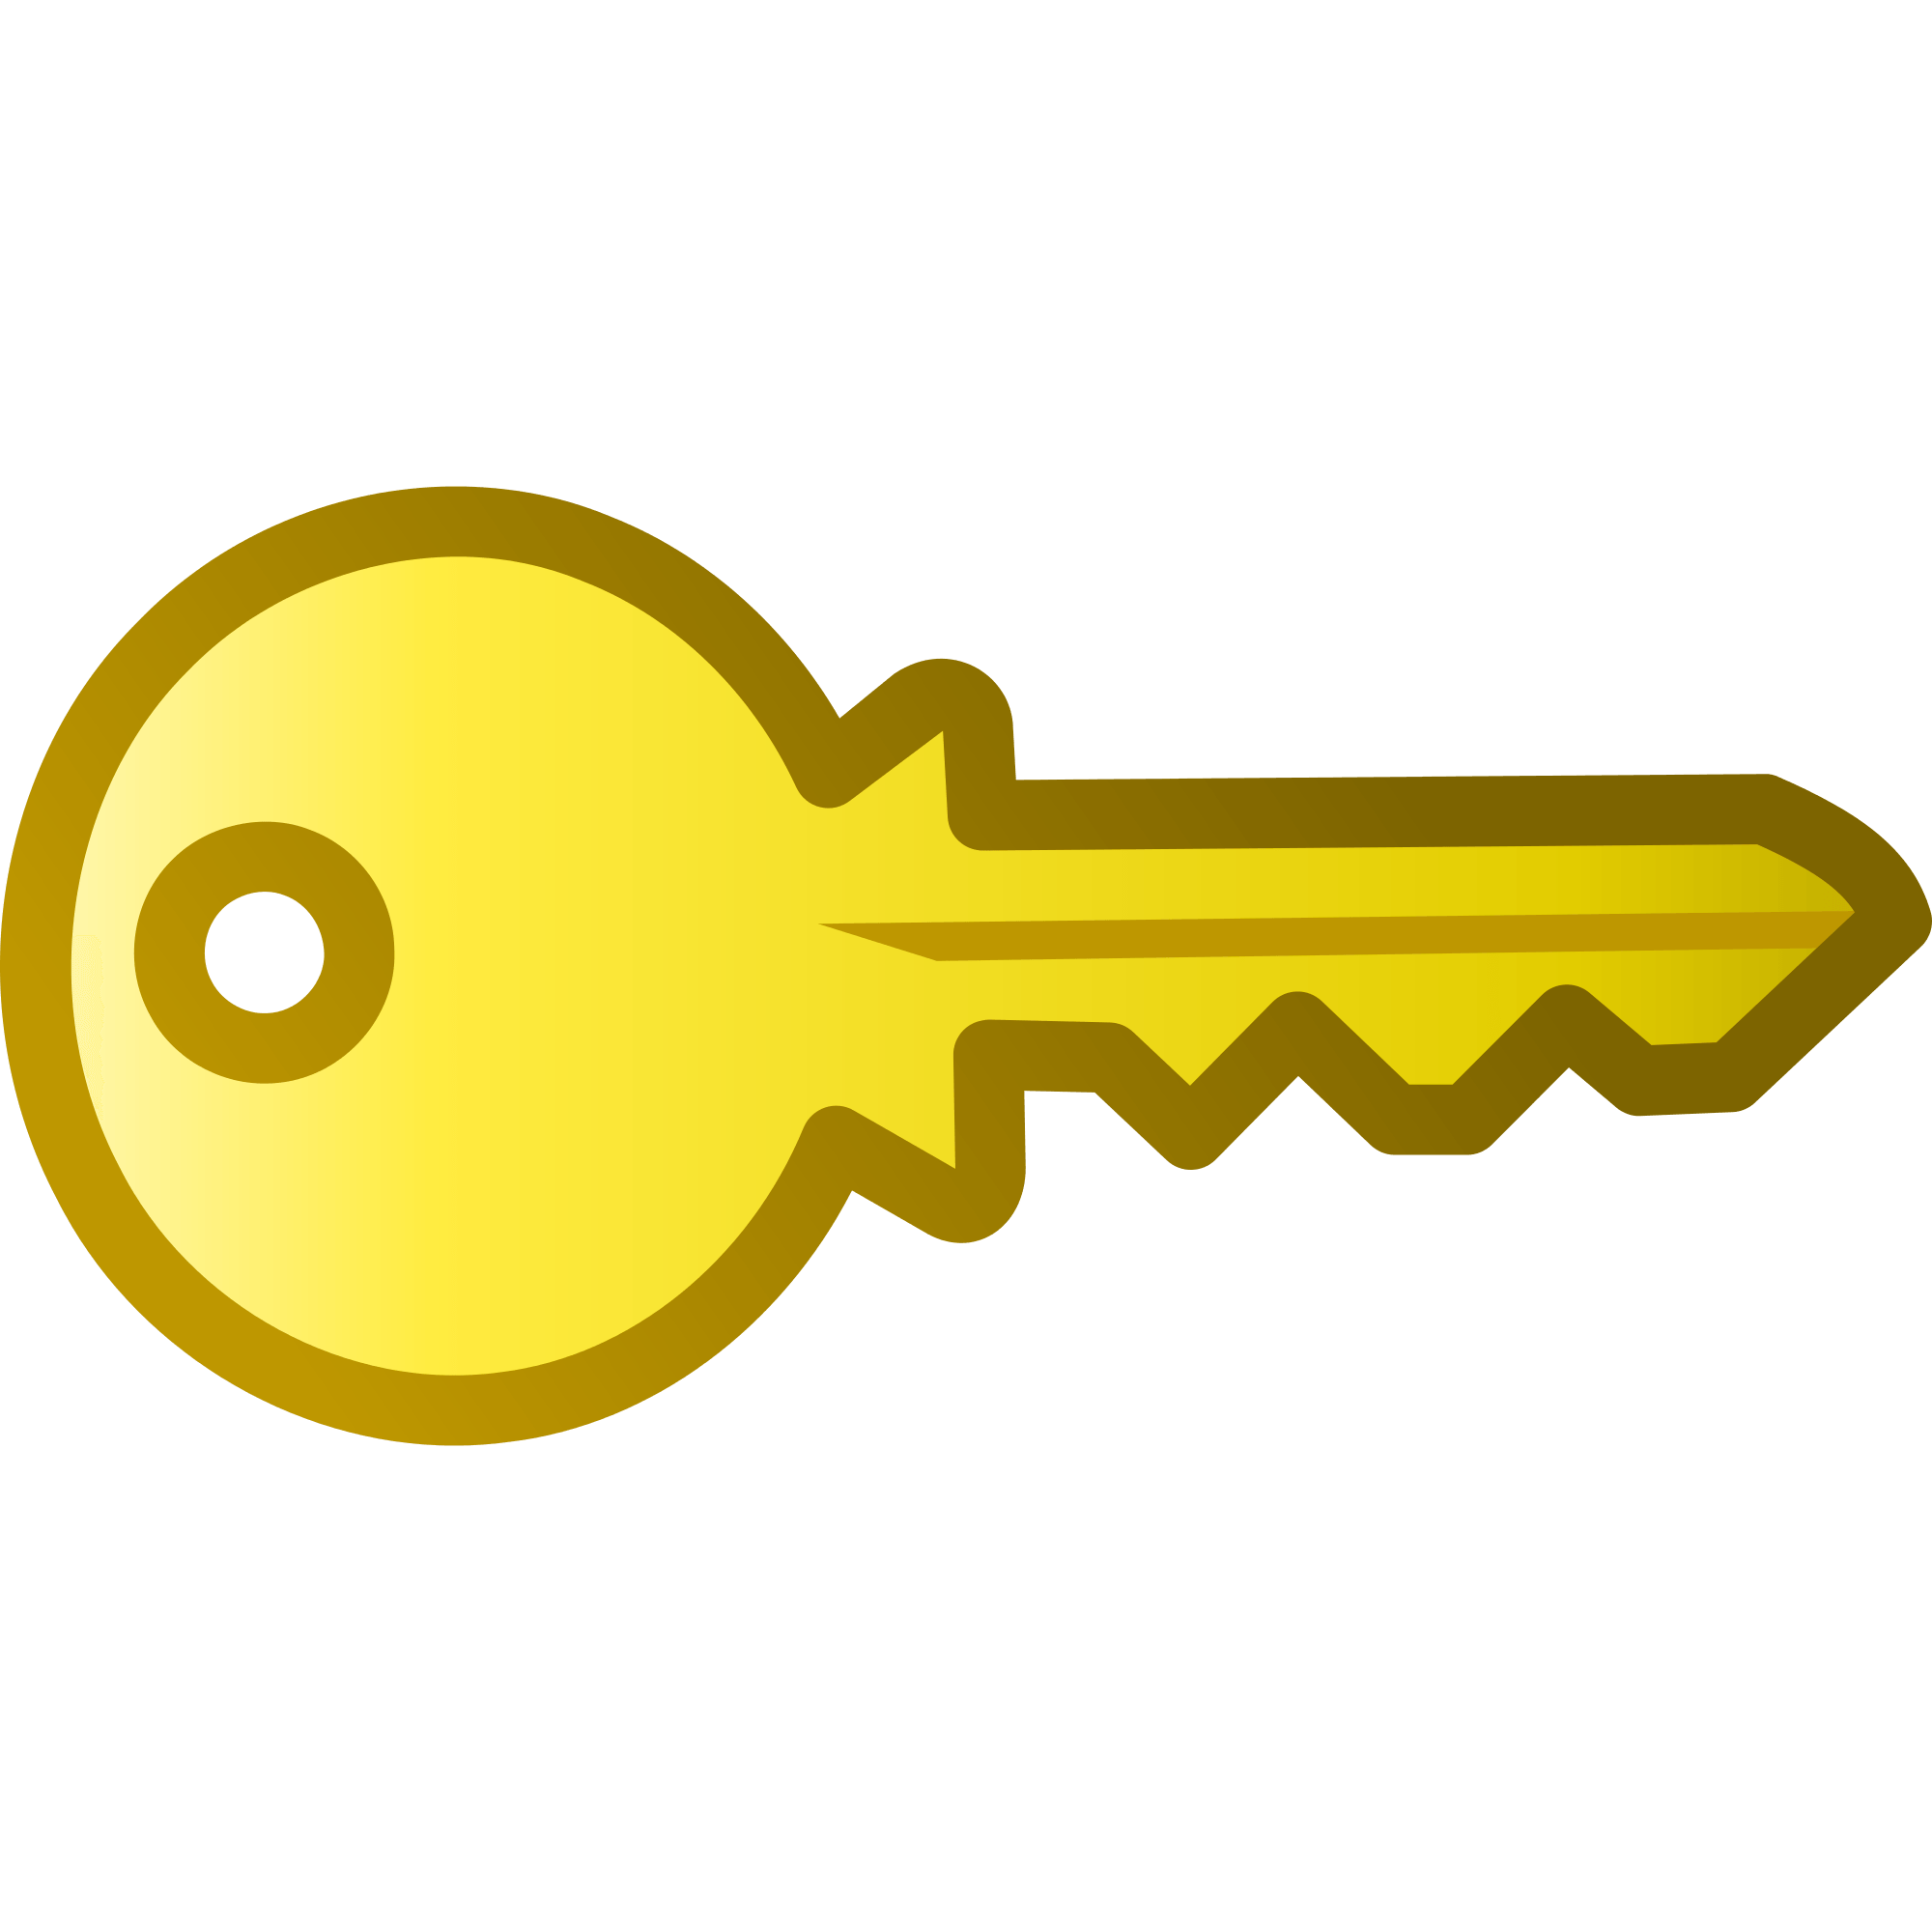 Gold clipart keyhole. Golden key cliparts zone